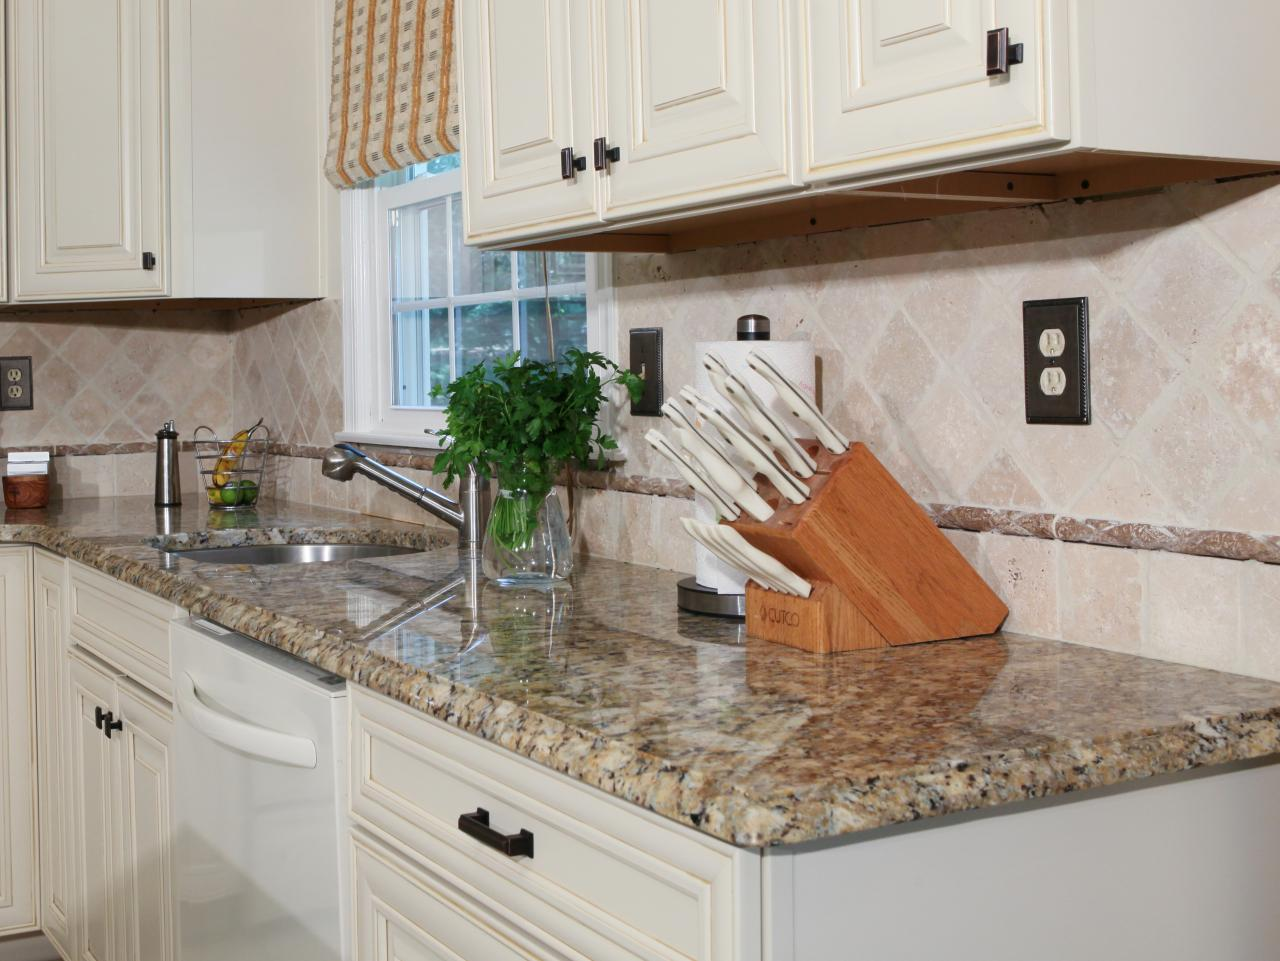 Important Things To Know About Granite Countertops